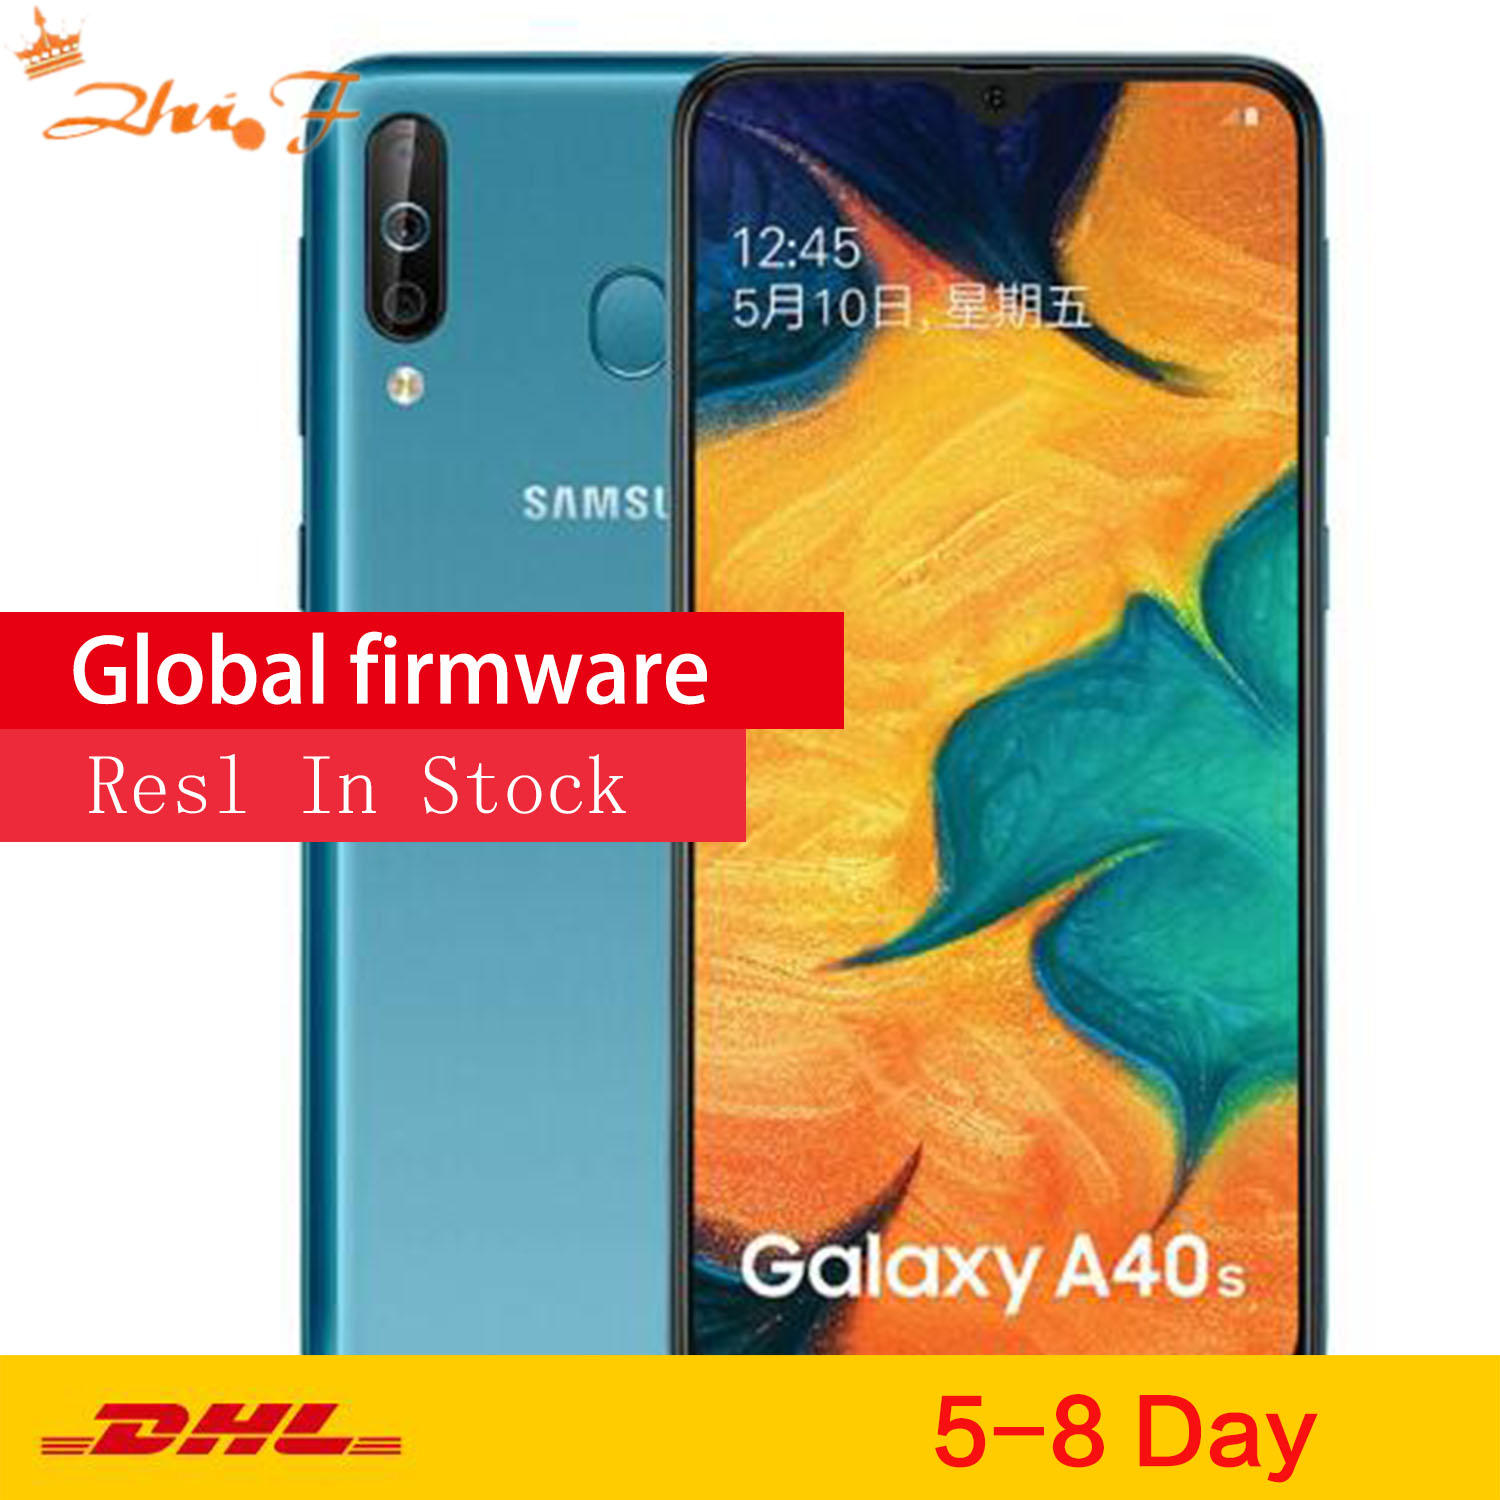 Samsung Galaxy A40s 4G LTE Android <font><b>Smartphone</b></font> 6.4 Inch Octa Core 6GB <font><b>64GB</b></font> 5000mAh Super-fast charging Face unlock Mobile phone image